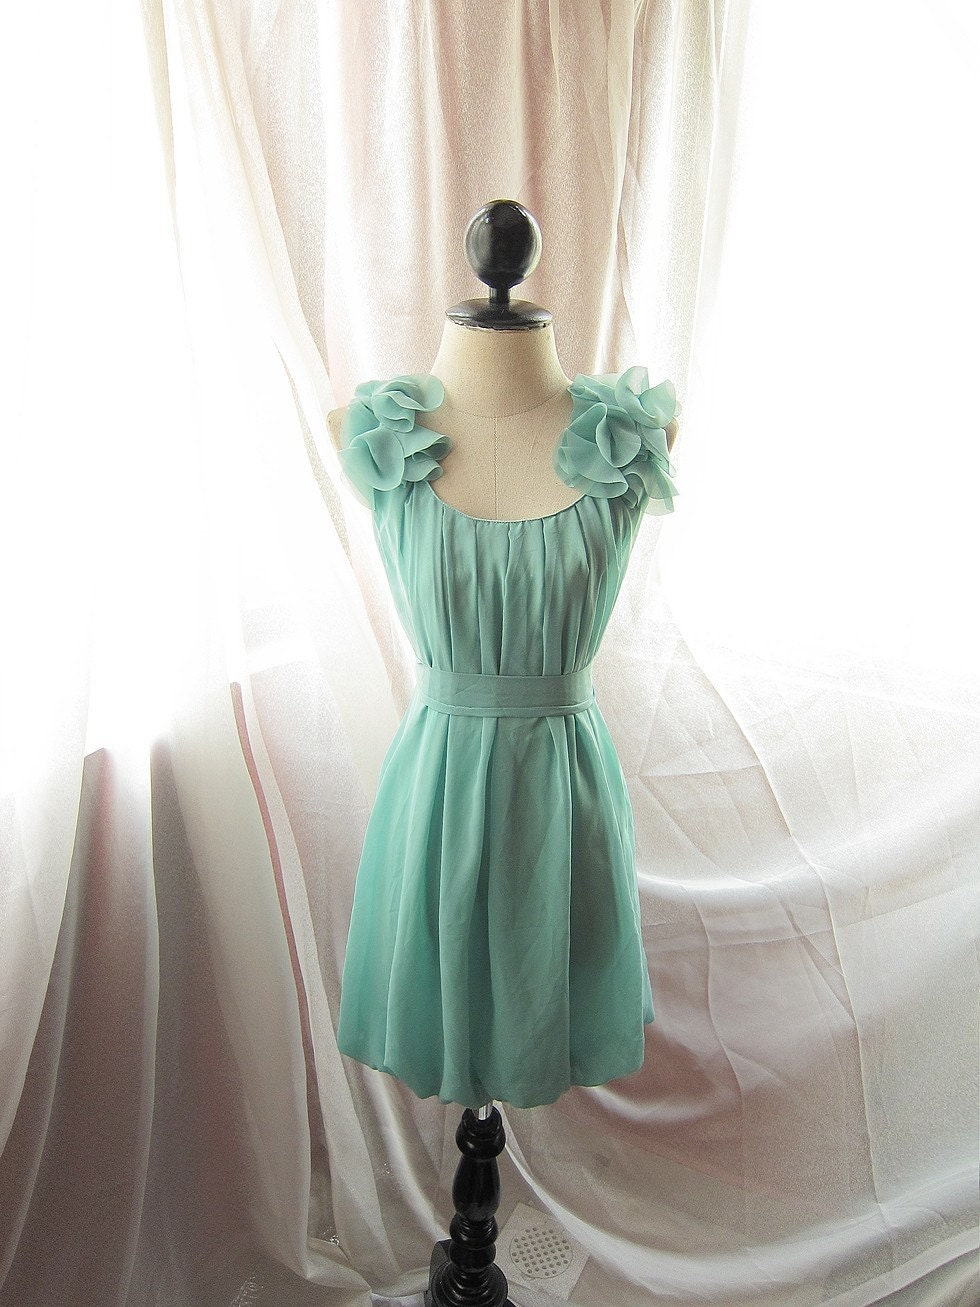 Minty Green Soft Misty Nostalgia Dreamy Romantic Havisham Mille Feuille Petal Chiffon Bubble Hem Dress